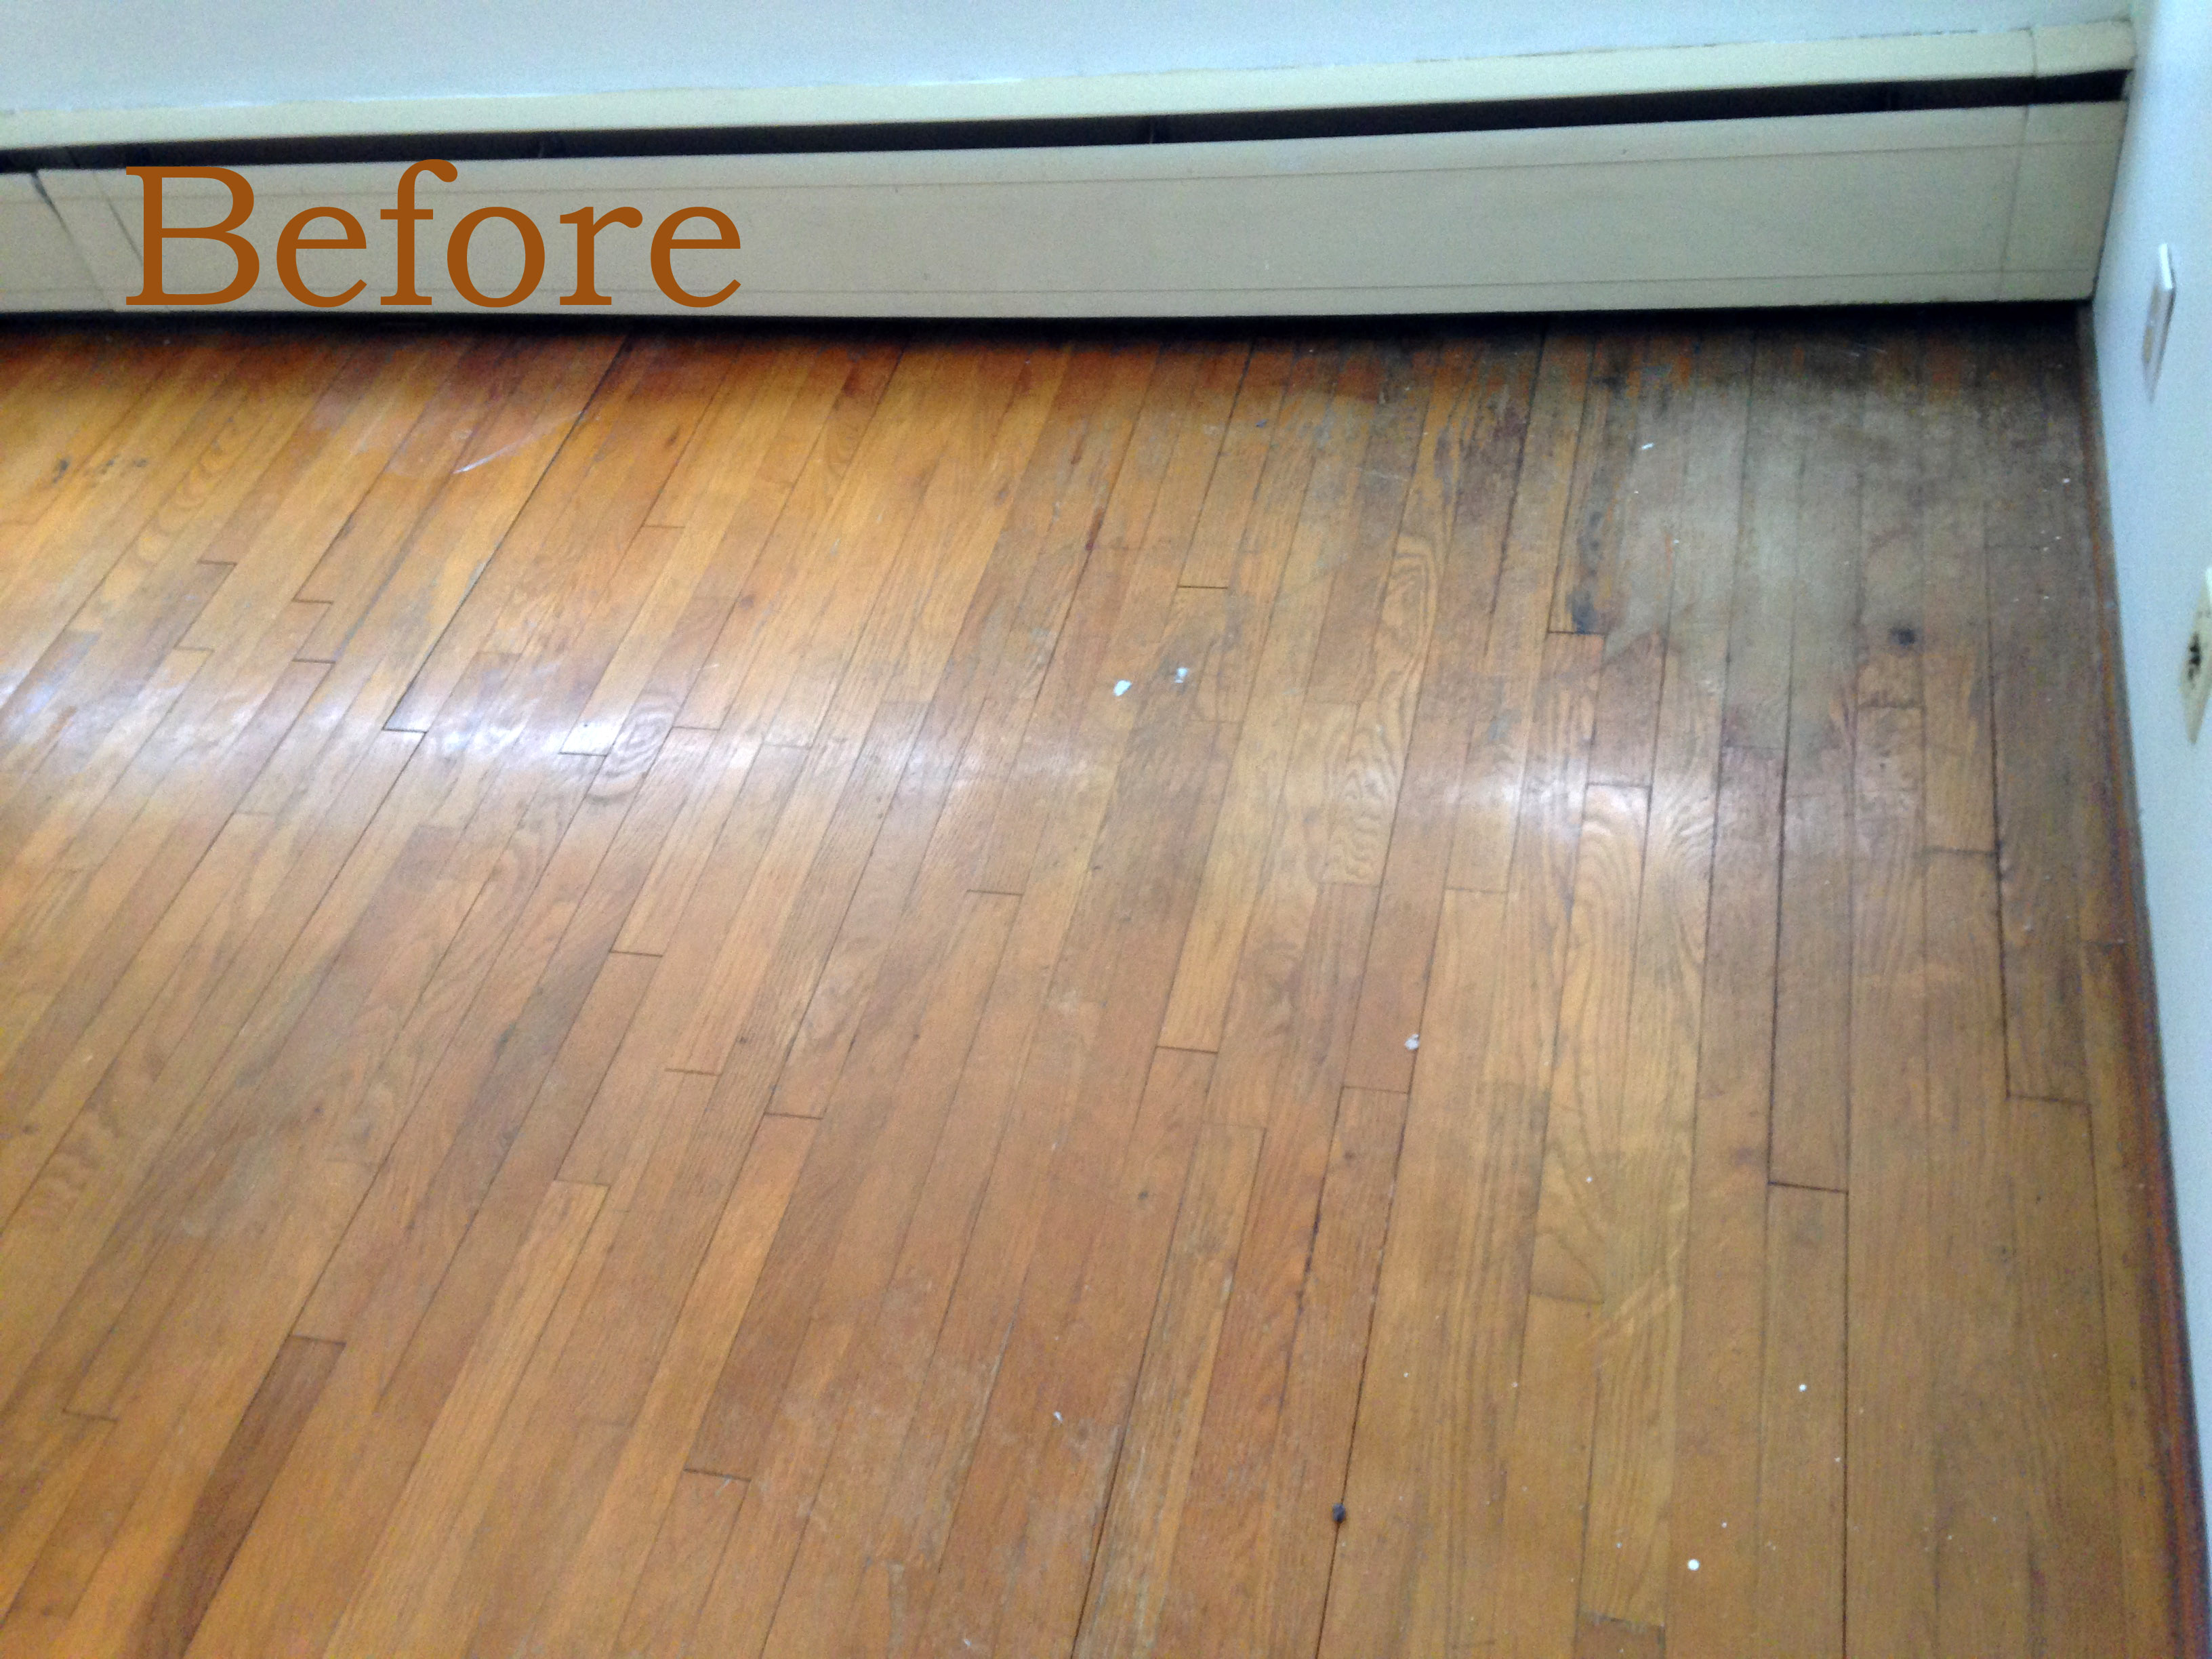 Wood floor finishing options images for Hardwood floor finishes